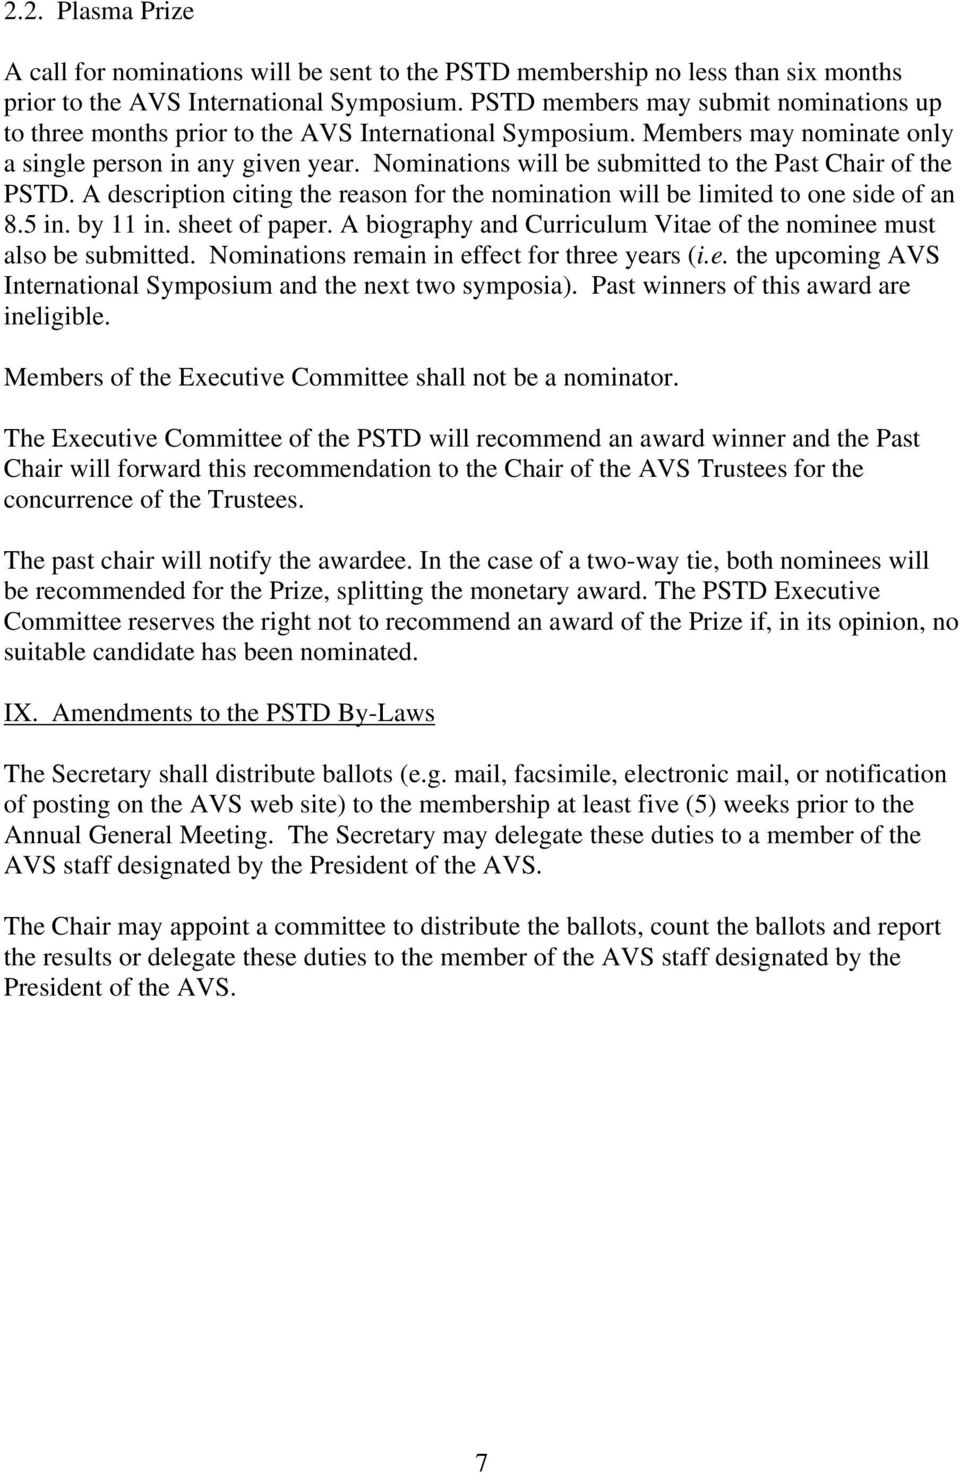 Nominations will be submitted to the Past Chair of the PSTD. A description citing the reason for the nomination will be limited to one side of an 8.5 in. by 11 in. sheet of paper.